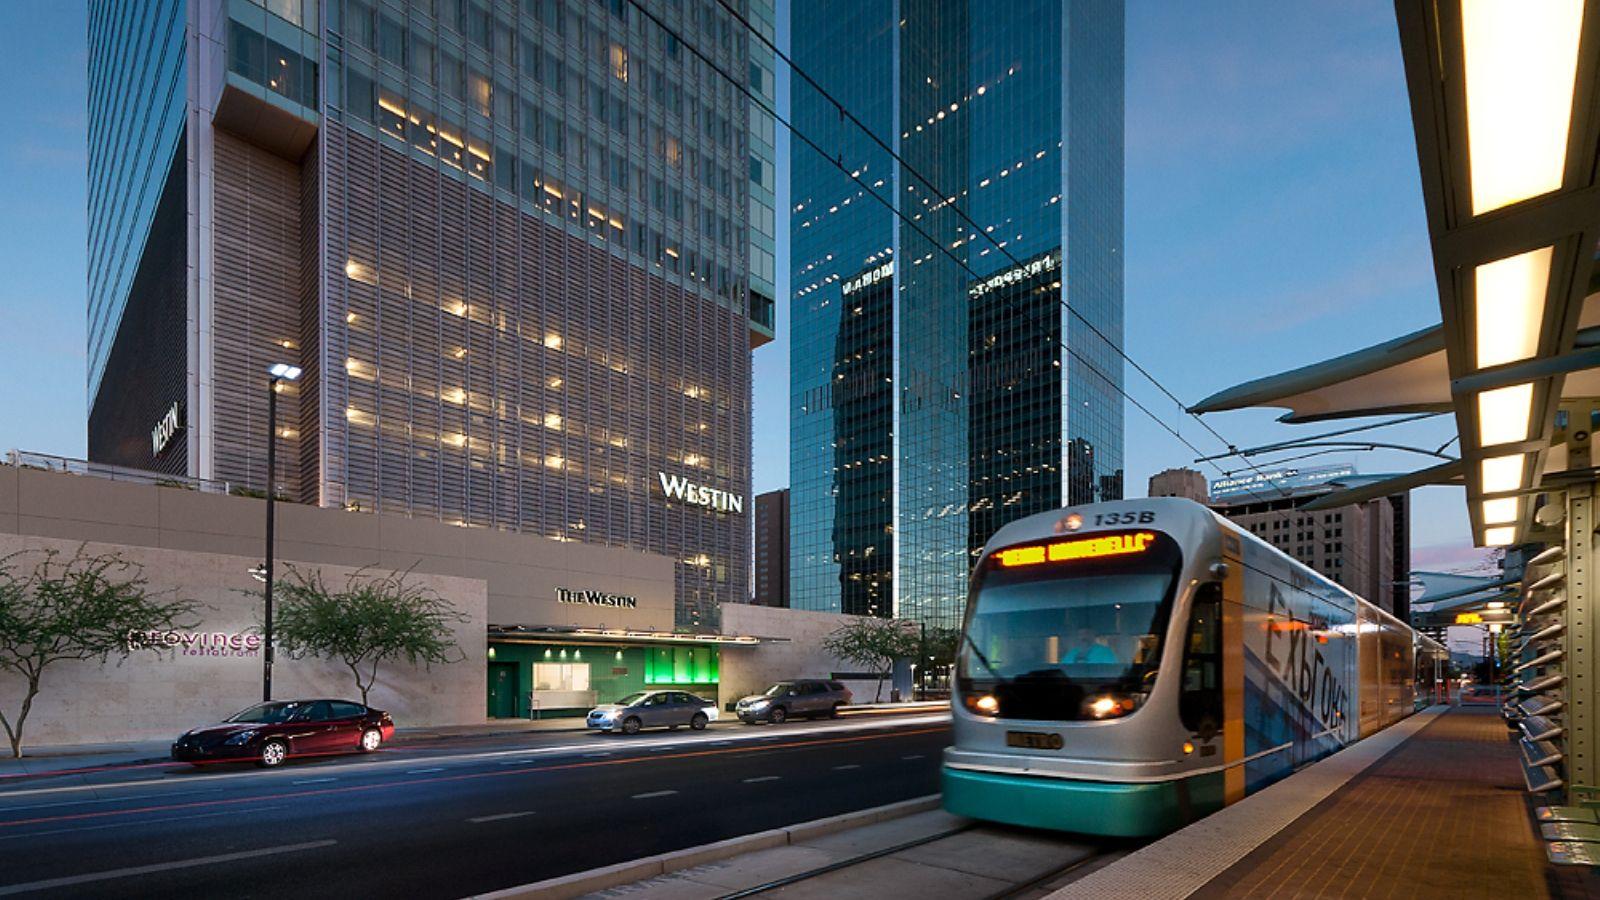 Hotels near ASU - The Westin Phoenix Downtown Hotel